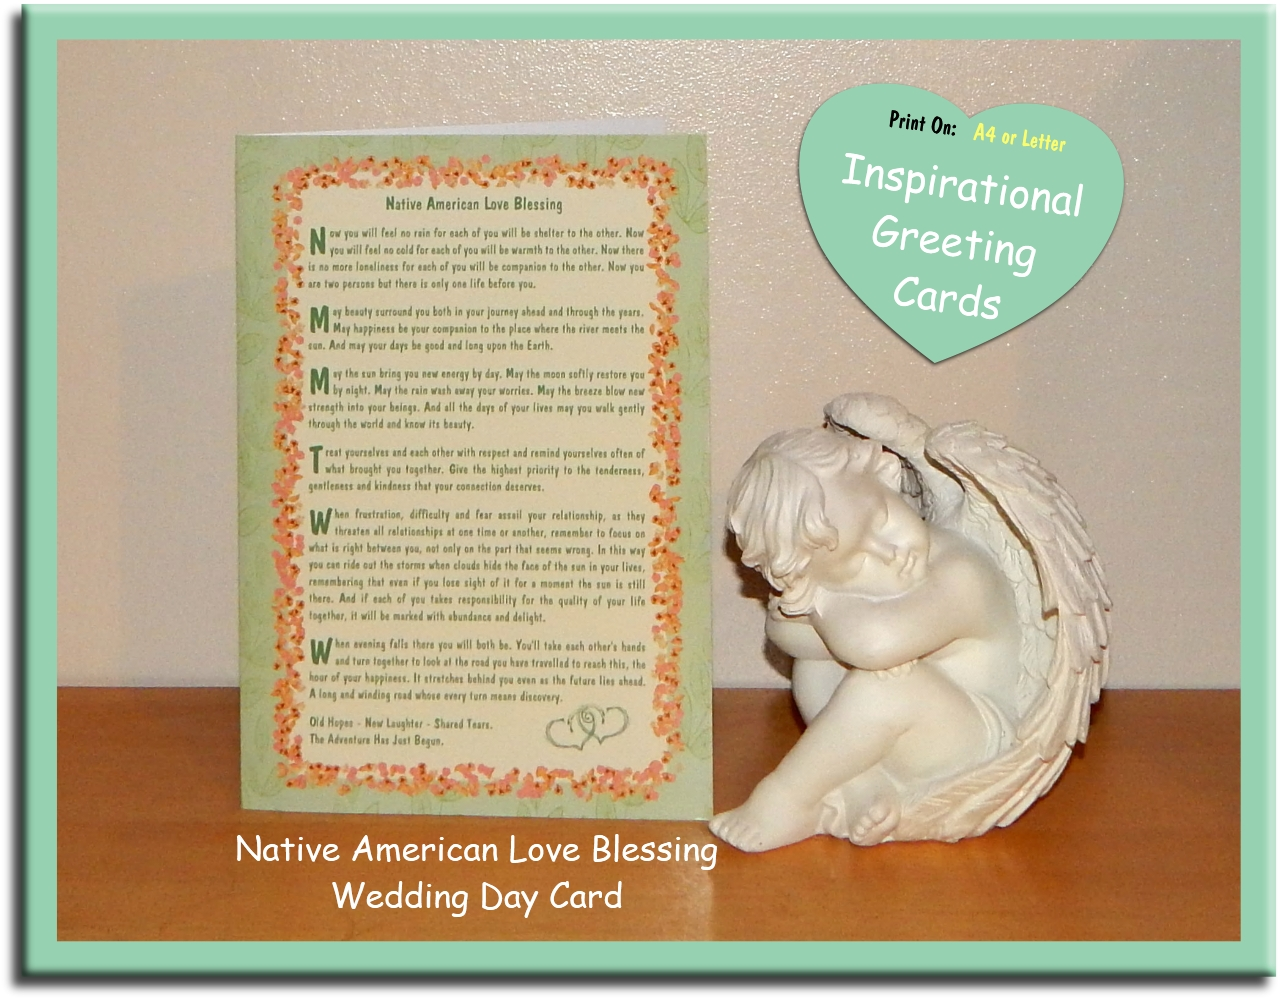 Native American Love Blessing - Inspirational Wedding Day Card - Spiritual Quotes To Live By on Etsy